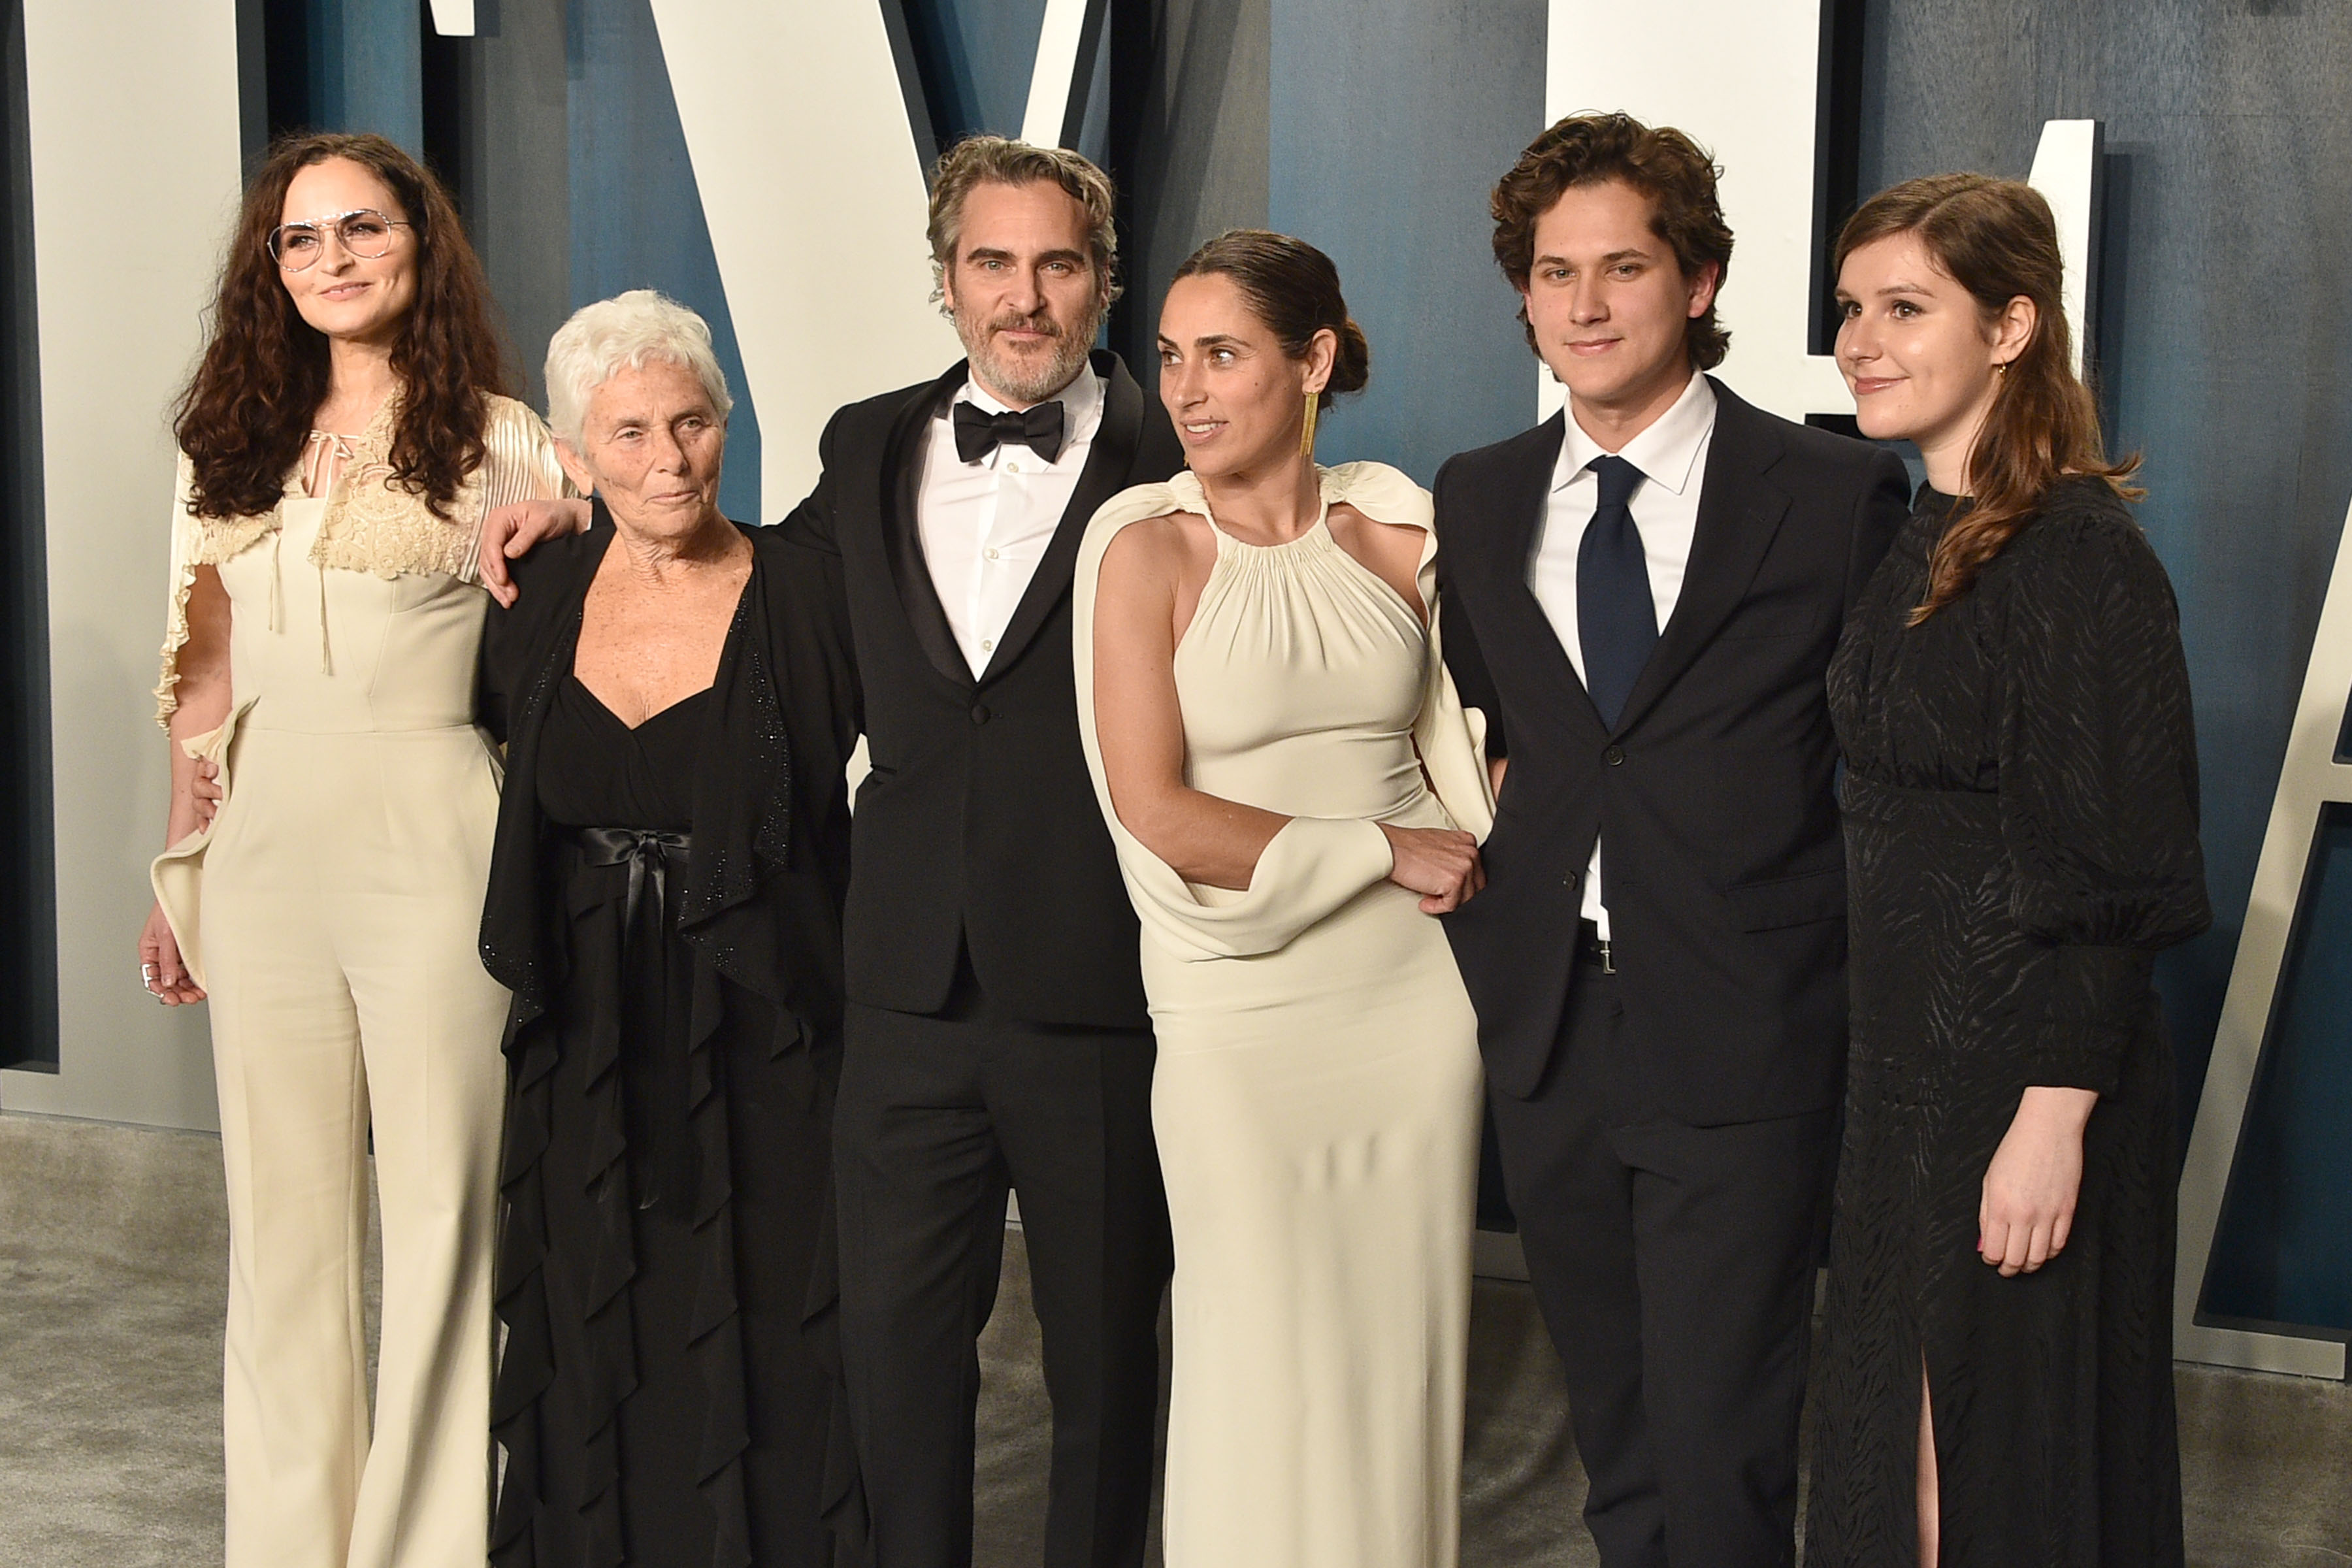 (L-R) Rain Phoenix, Arlyn Phoenix, Joaquin Phoenix, Summer Phoenix and guests attends the 2020 Vanity Fair Oscar Party at Wallis Annenberg Center for the Performing Arts on February 09, 2020 in Beverly Hills, California. (Photo by David Crotty/Patrick McMullan via Getty Images)